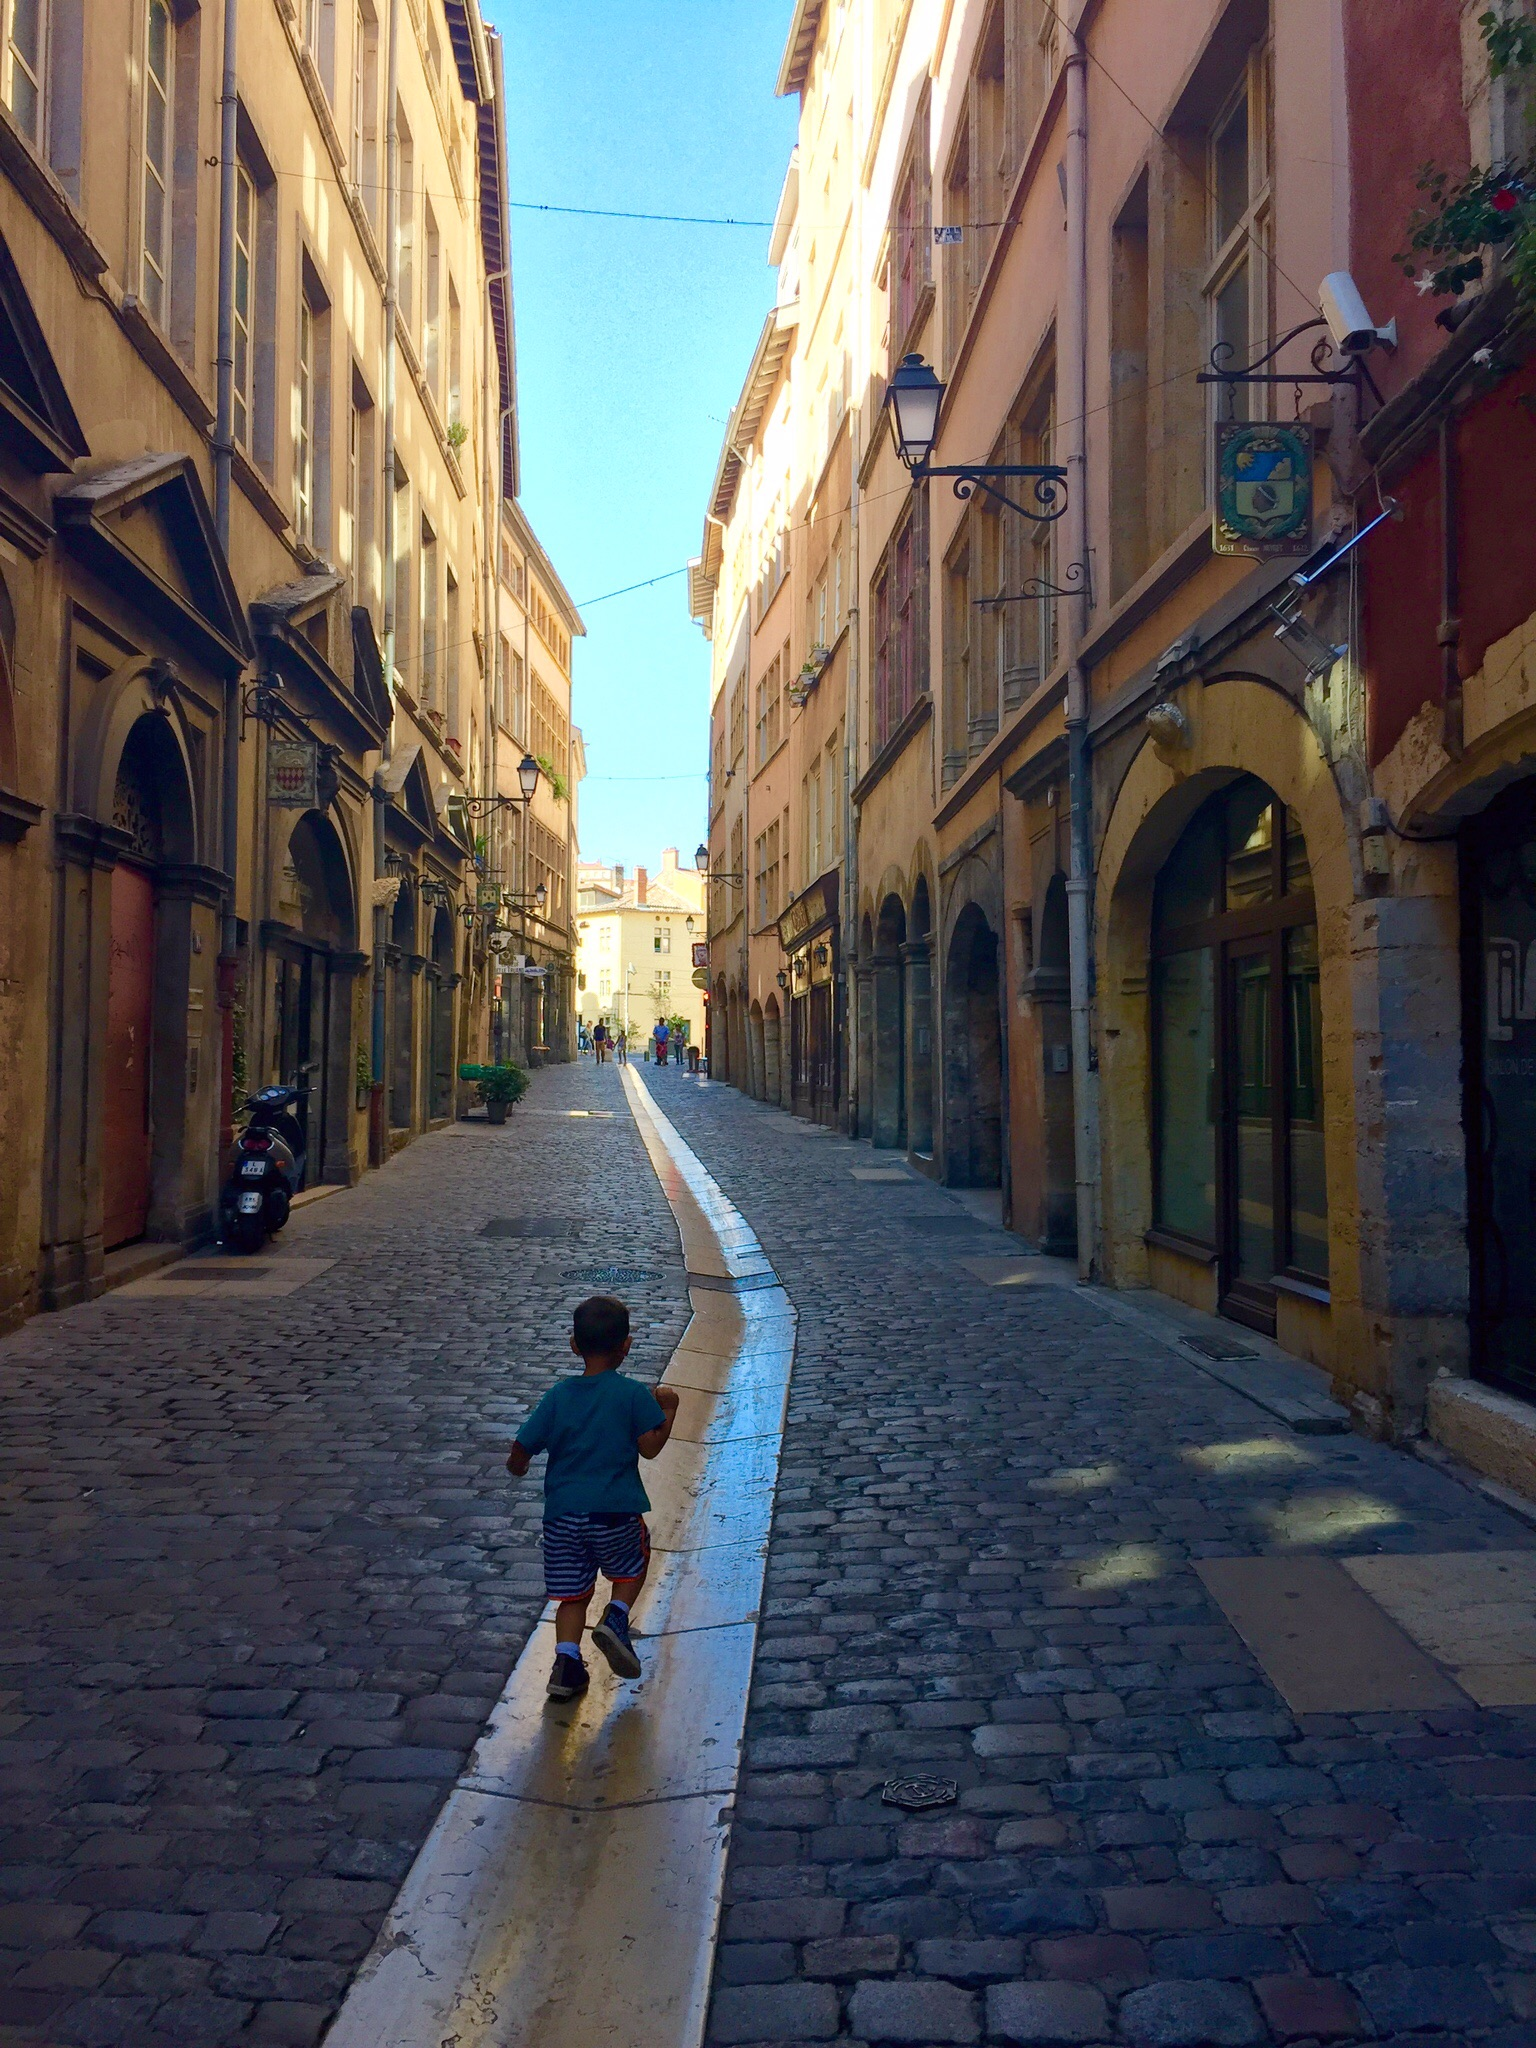 My son running down a street in Vieux Lyon